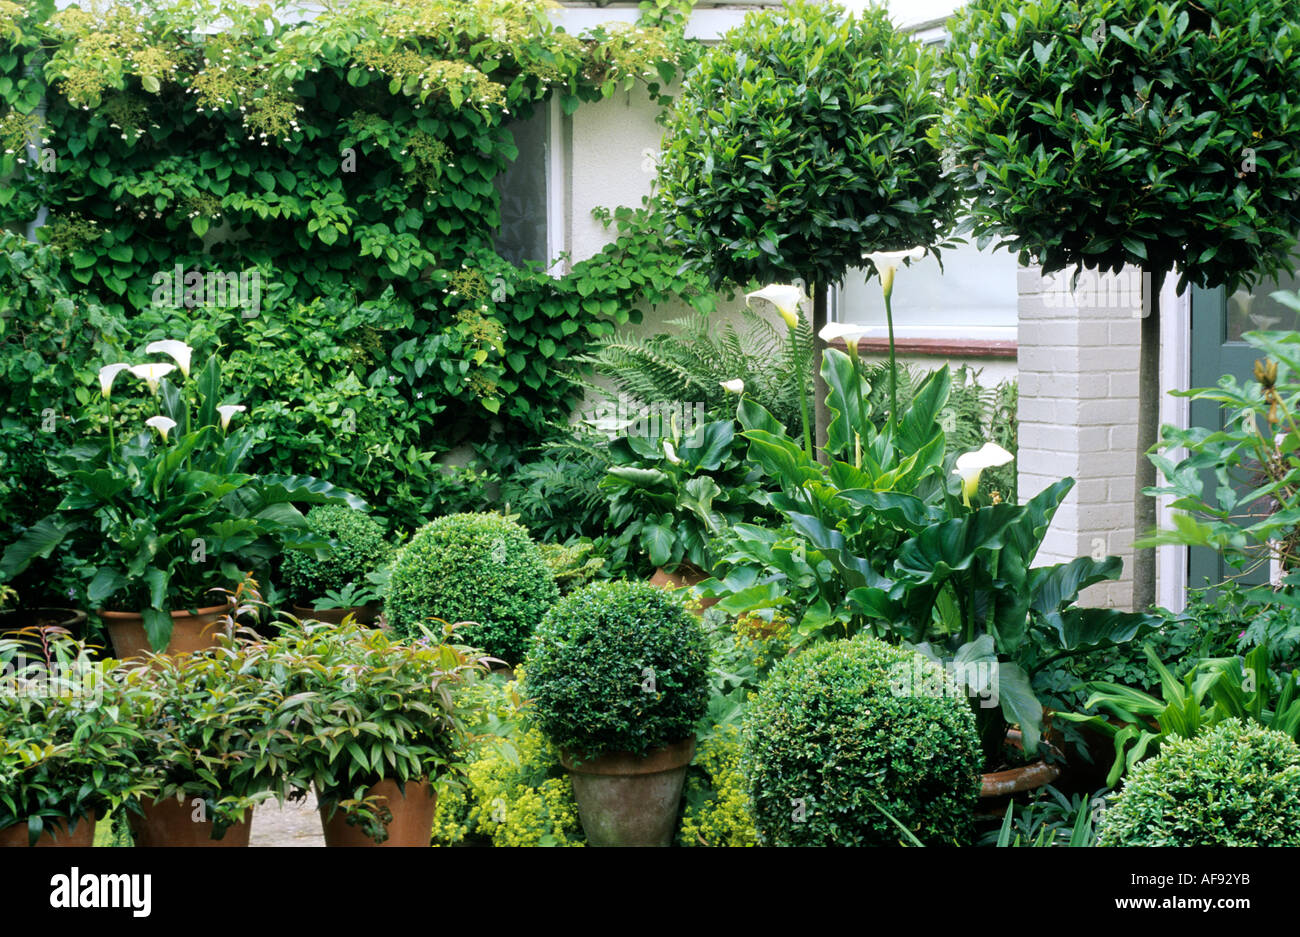 Green And White Topiary Garden Box Standard Bay Balls Stock Photo Alamy